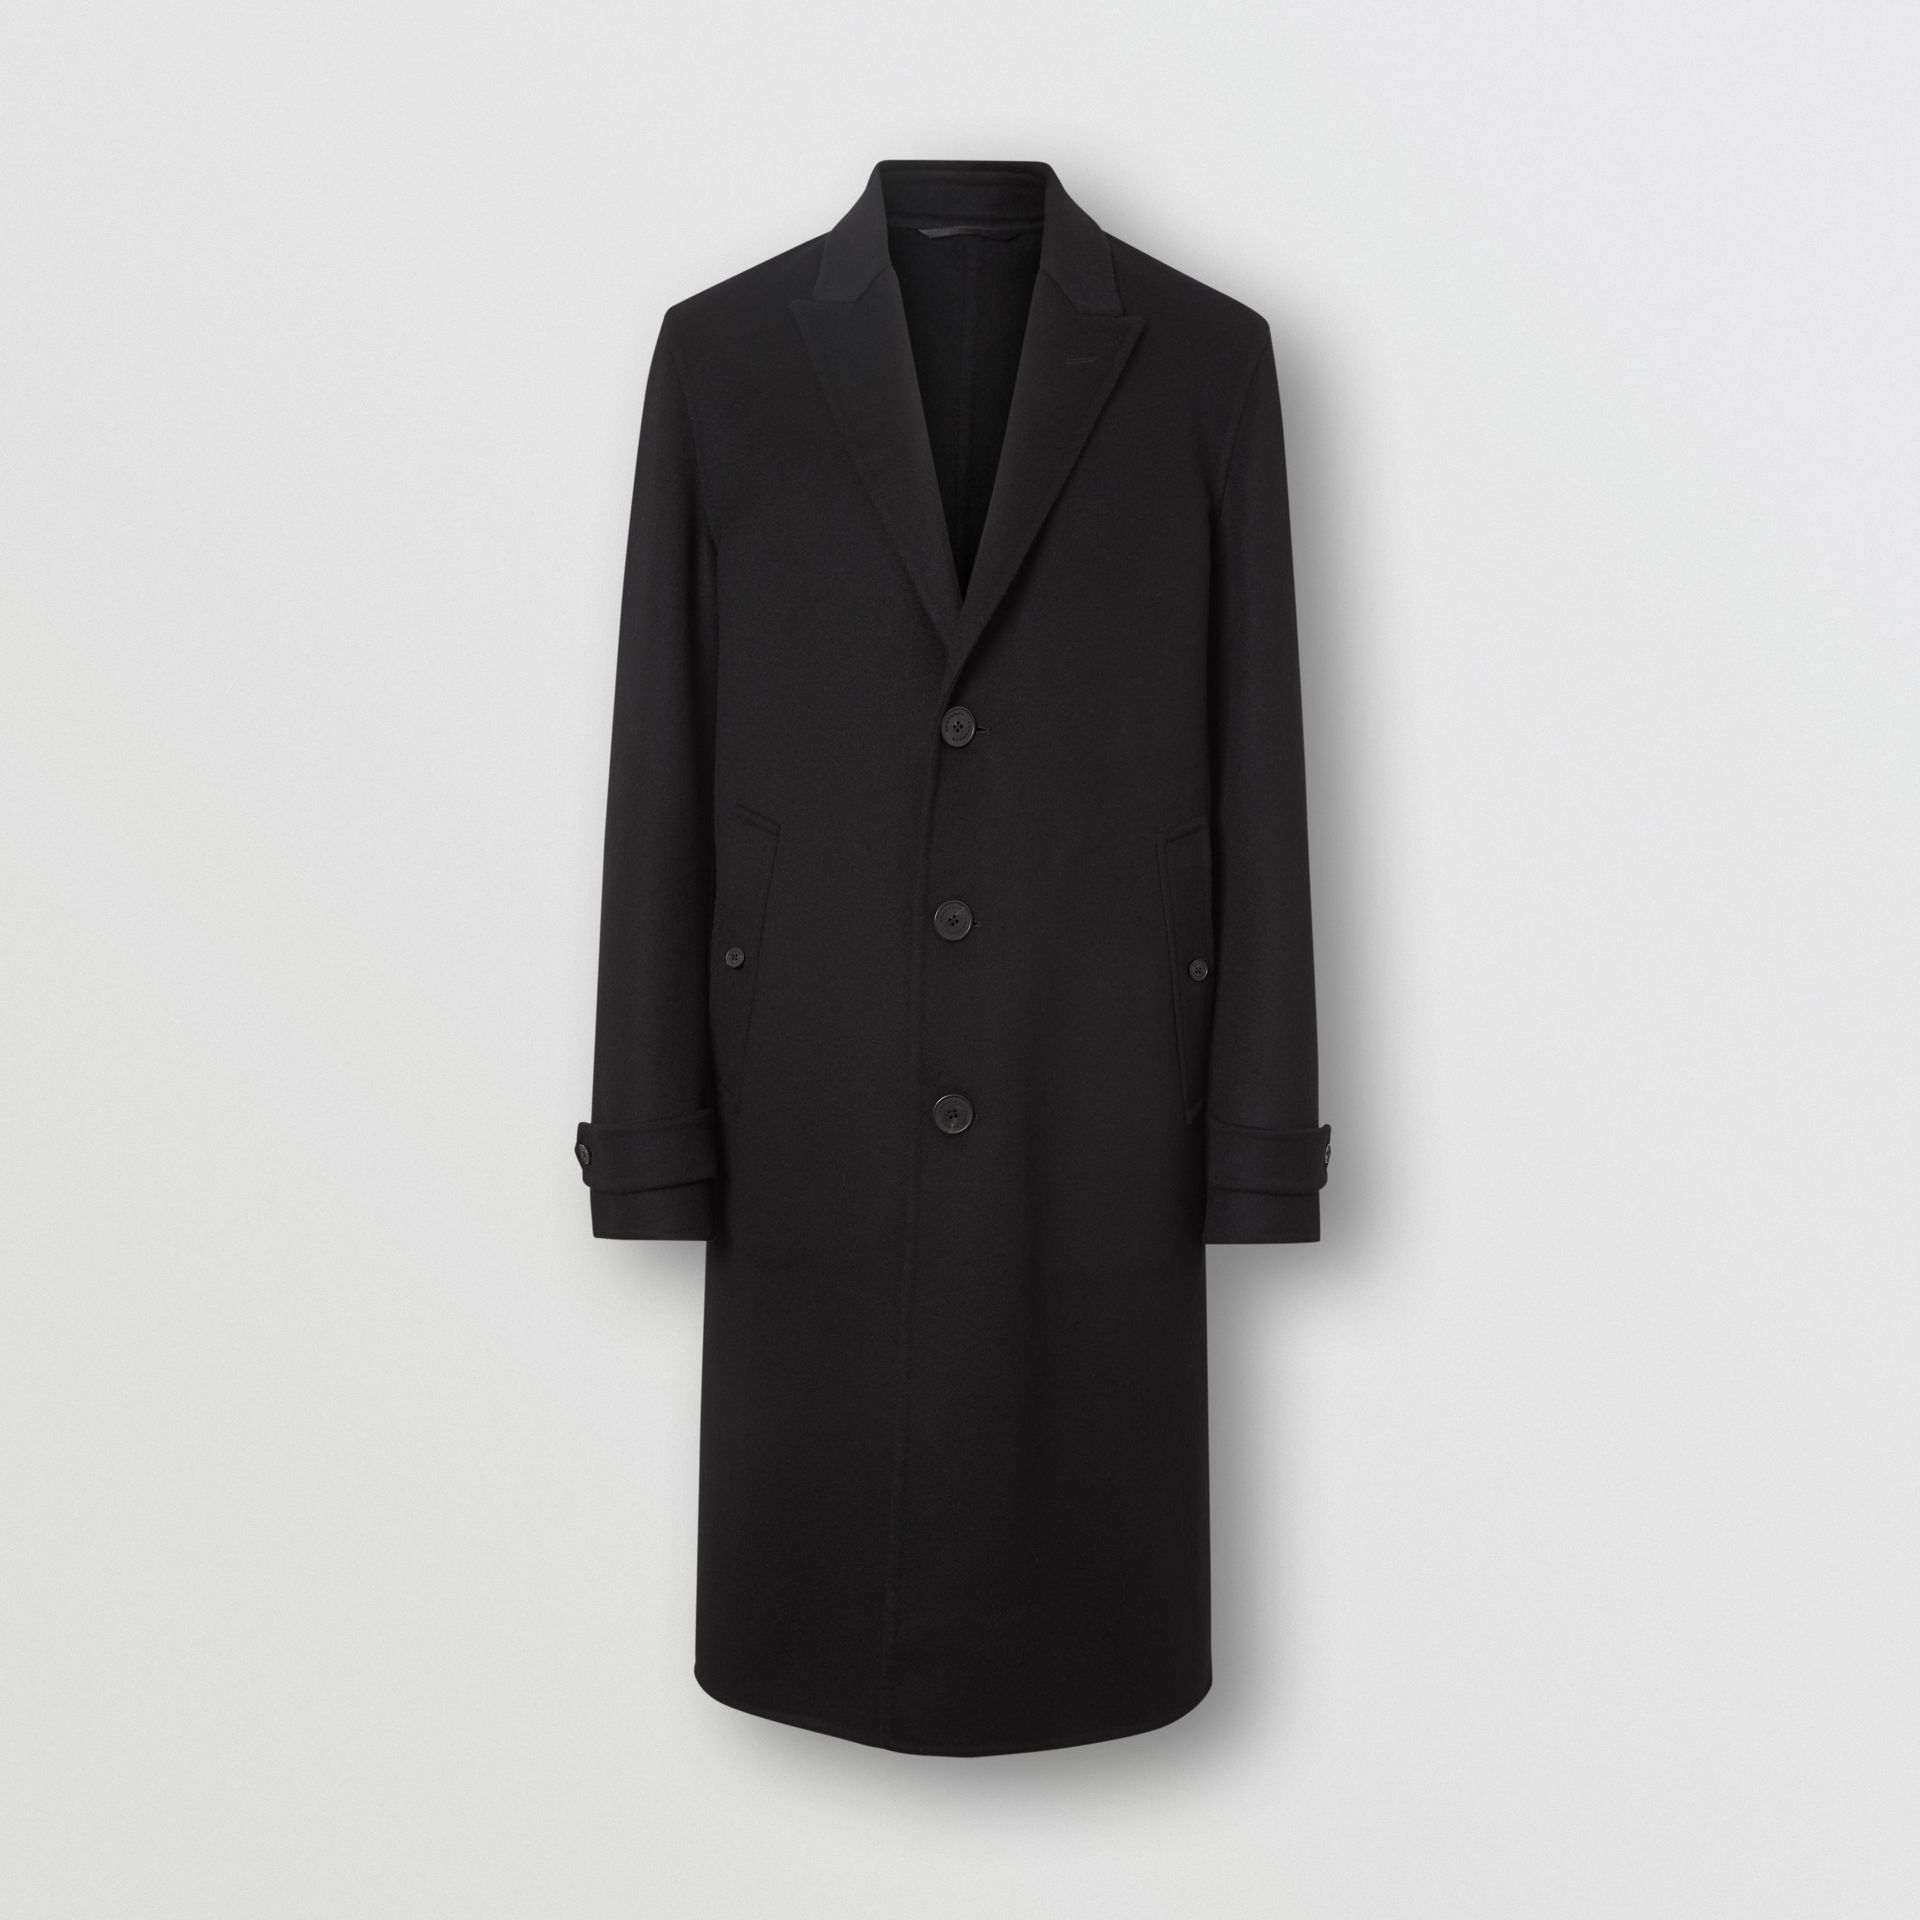 Cashmere Tailored Coat in Black - Men | Burberry United States - gallery image 3